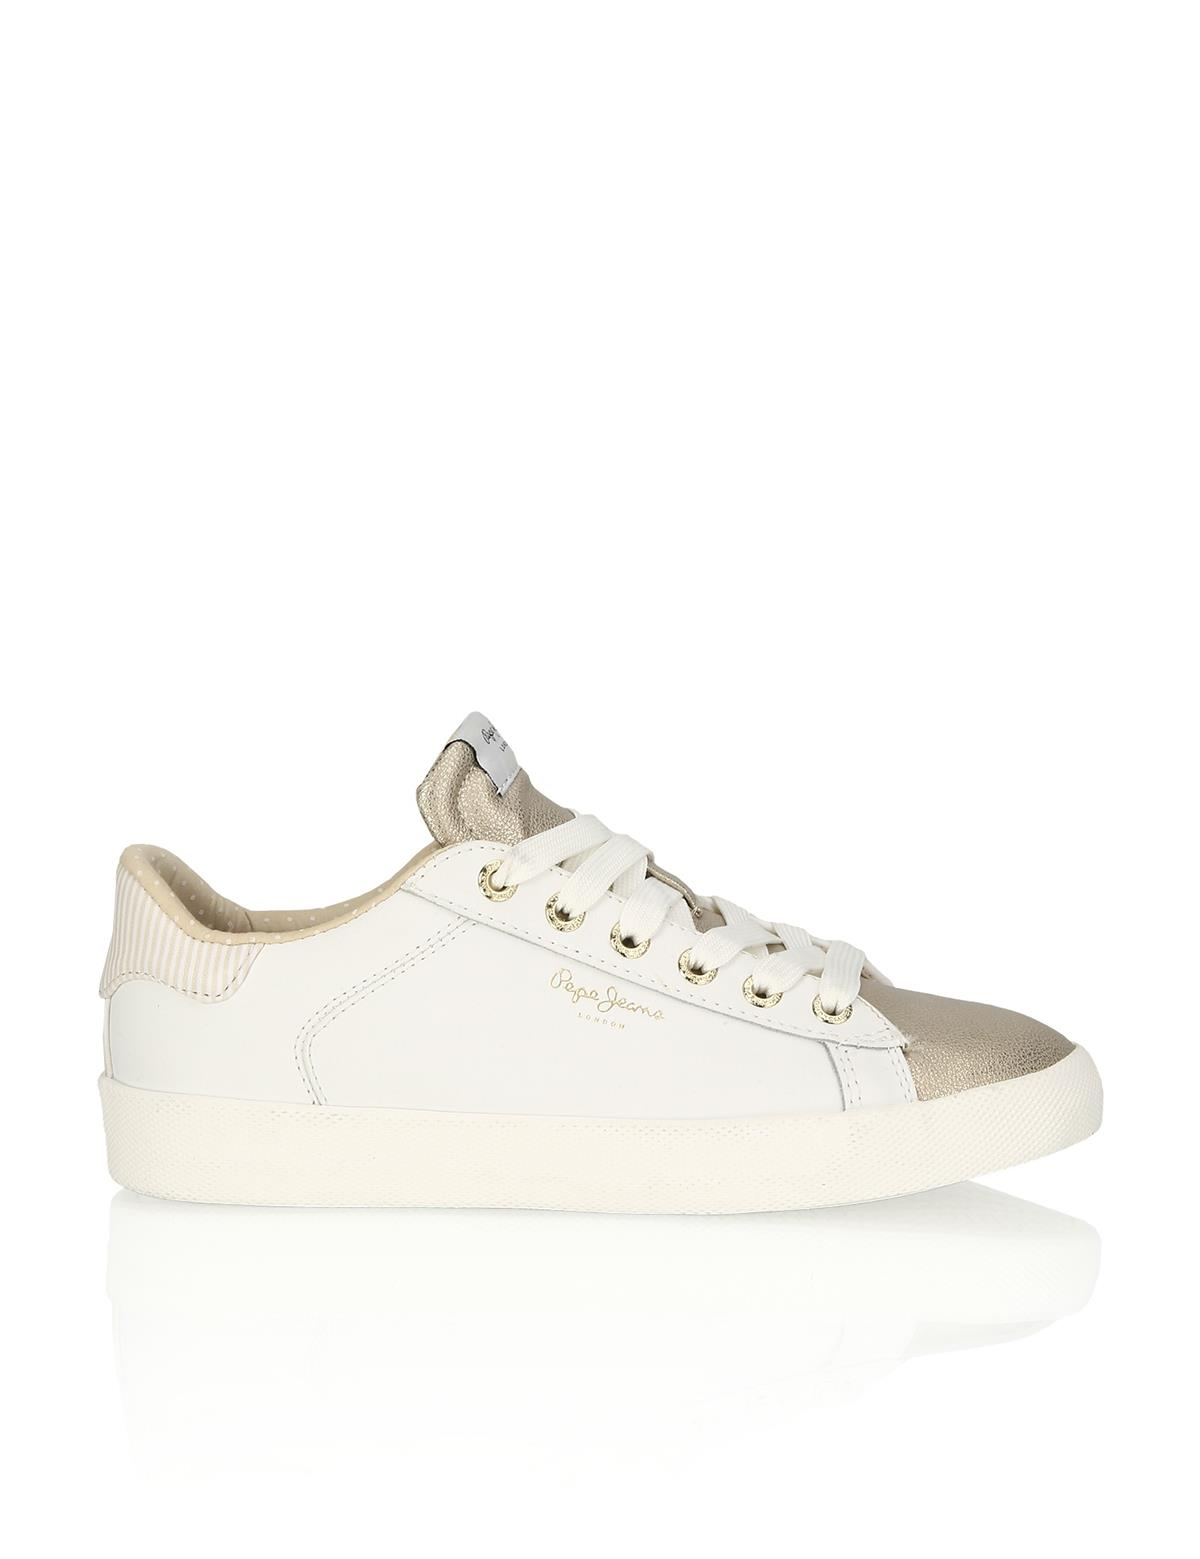 HUMANIC 90 Pepe Jeans Sneaker EUR 79,95 1241113215